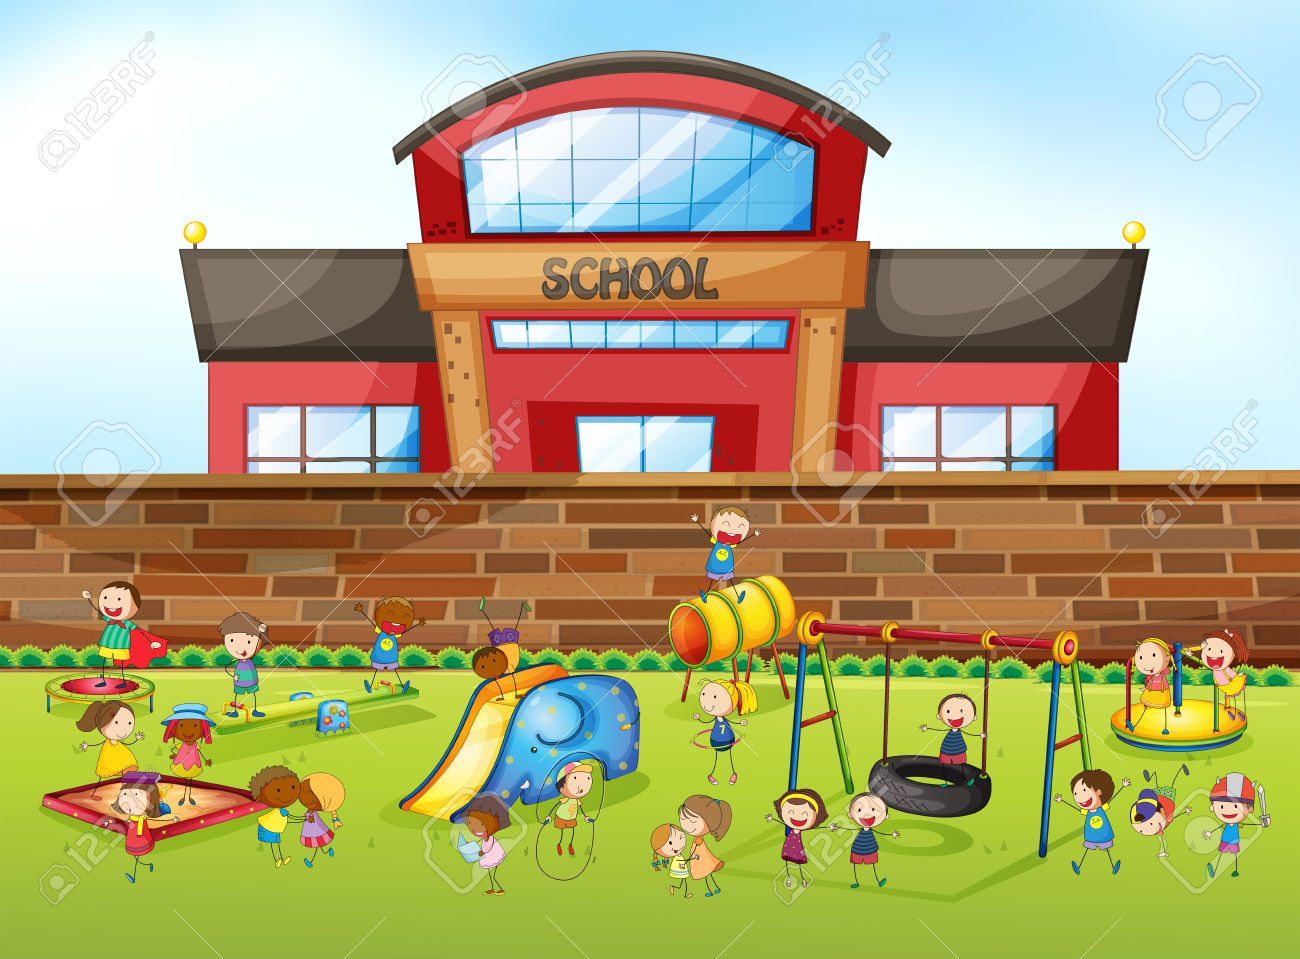 School Playground Clipart Images.